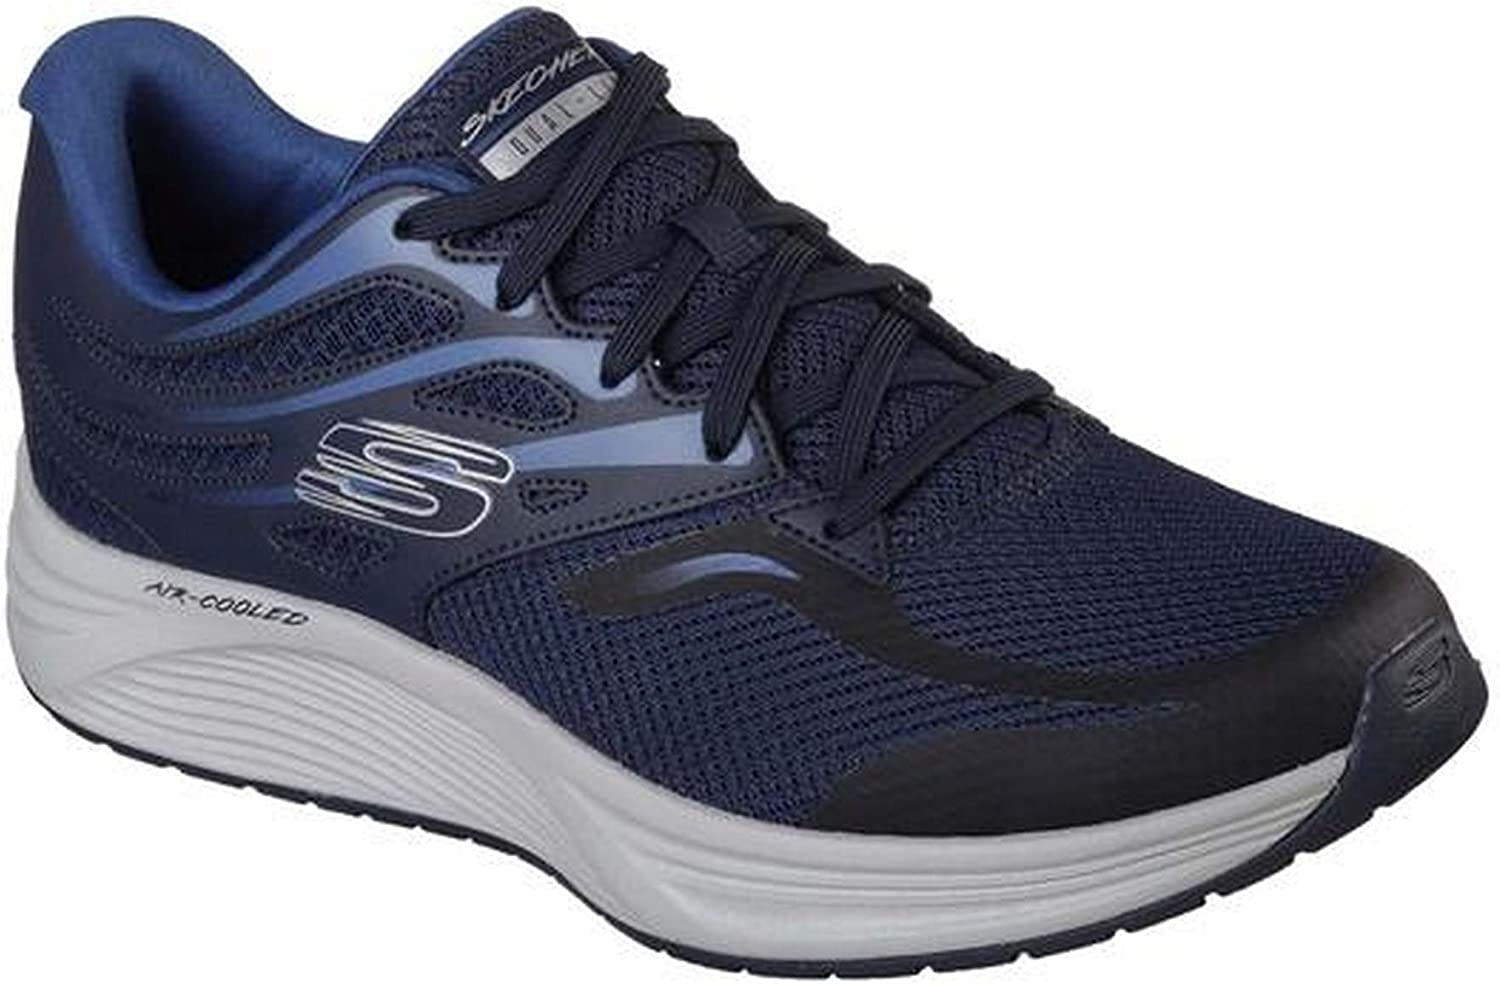 Skechers Mens Skyline Brightshore Lace Up Sneakers